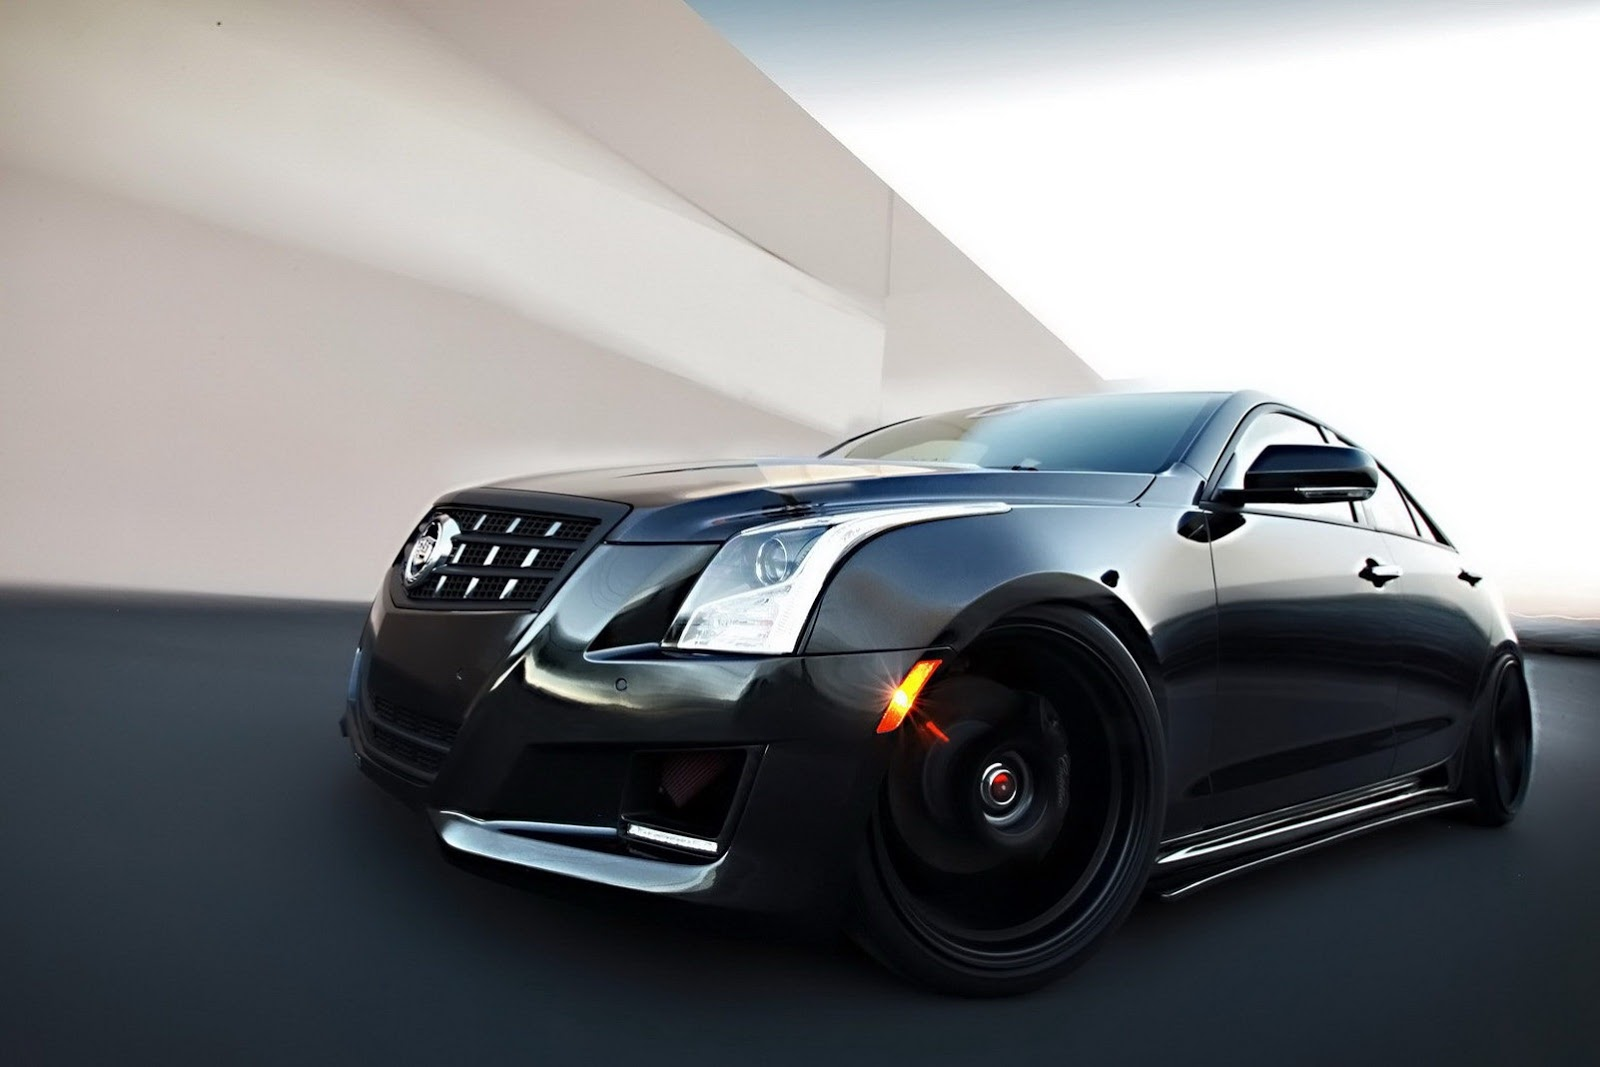 Cadillac Ats Tuned By D on Gm 3 4 V6 Engine